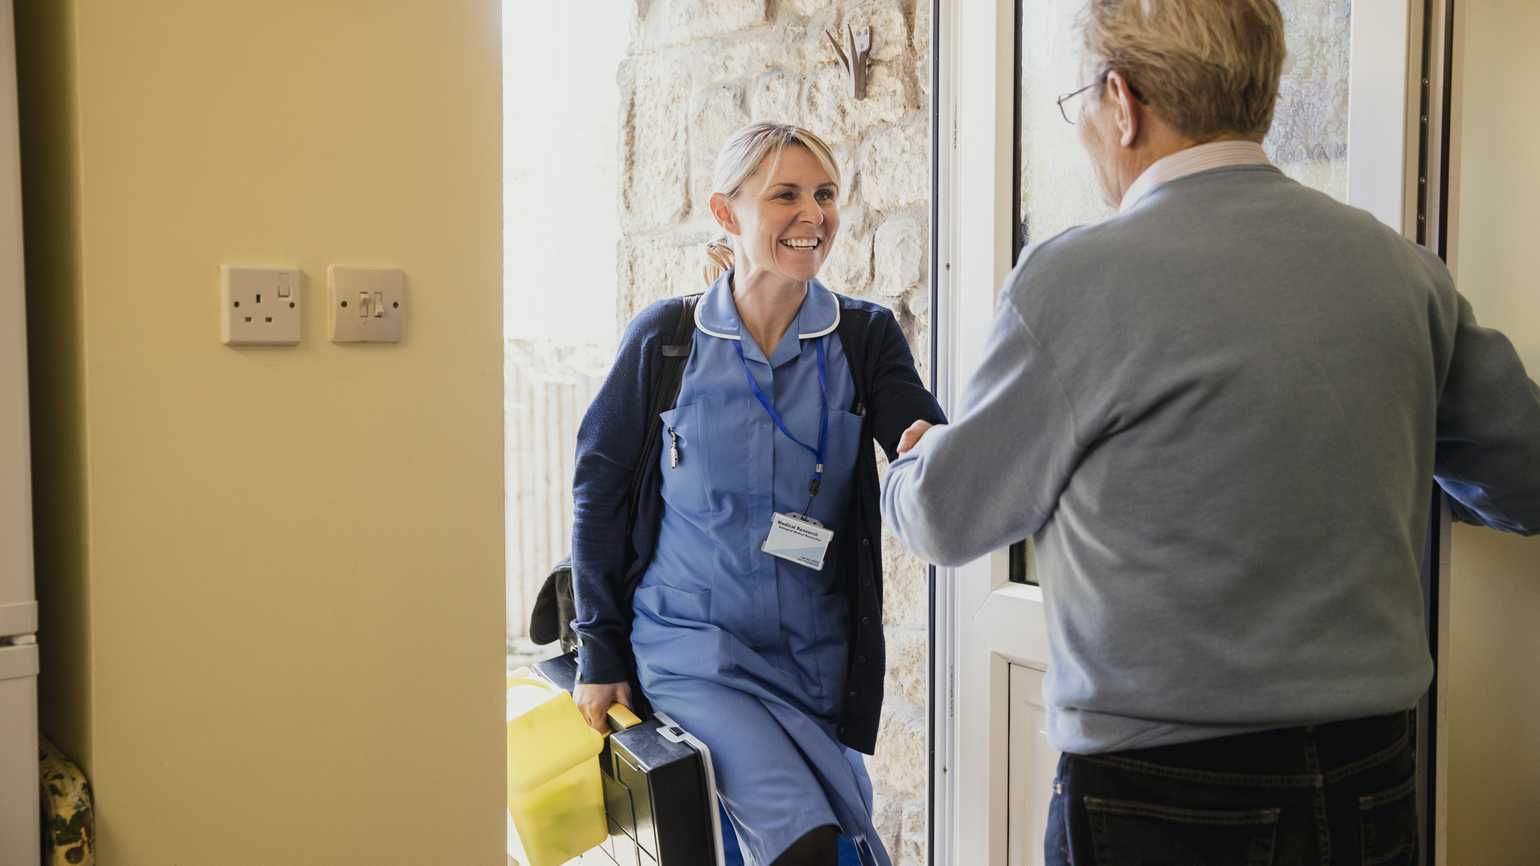 A home health aide at the doorstep of someone's home.